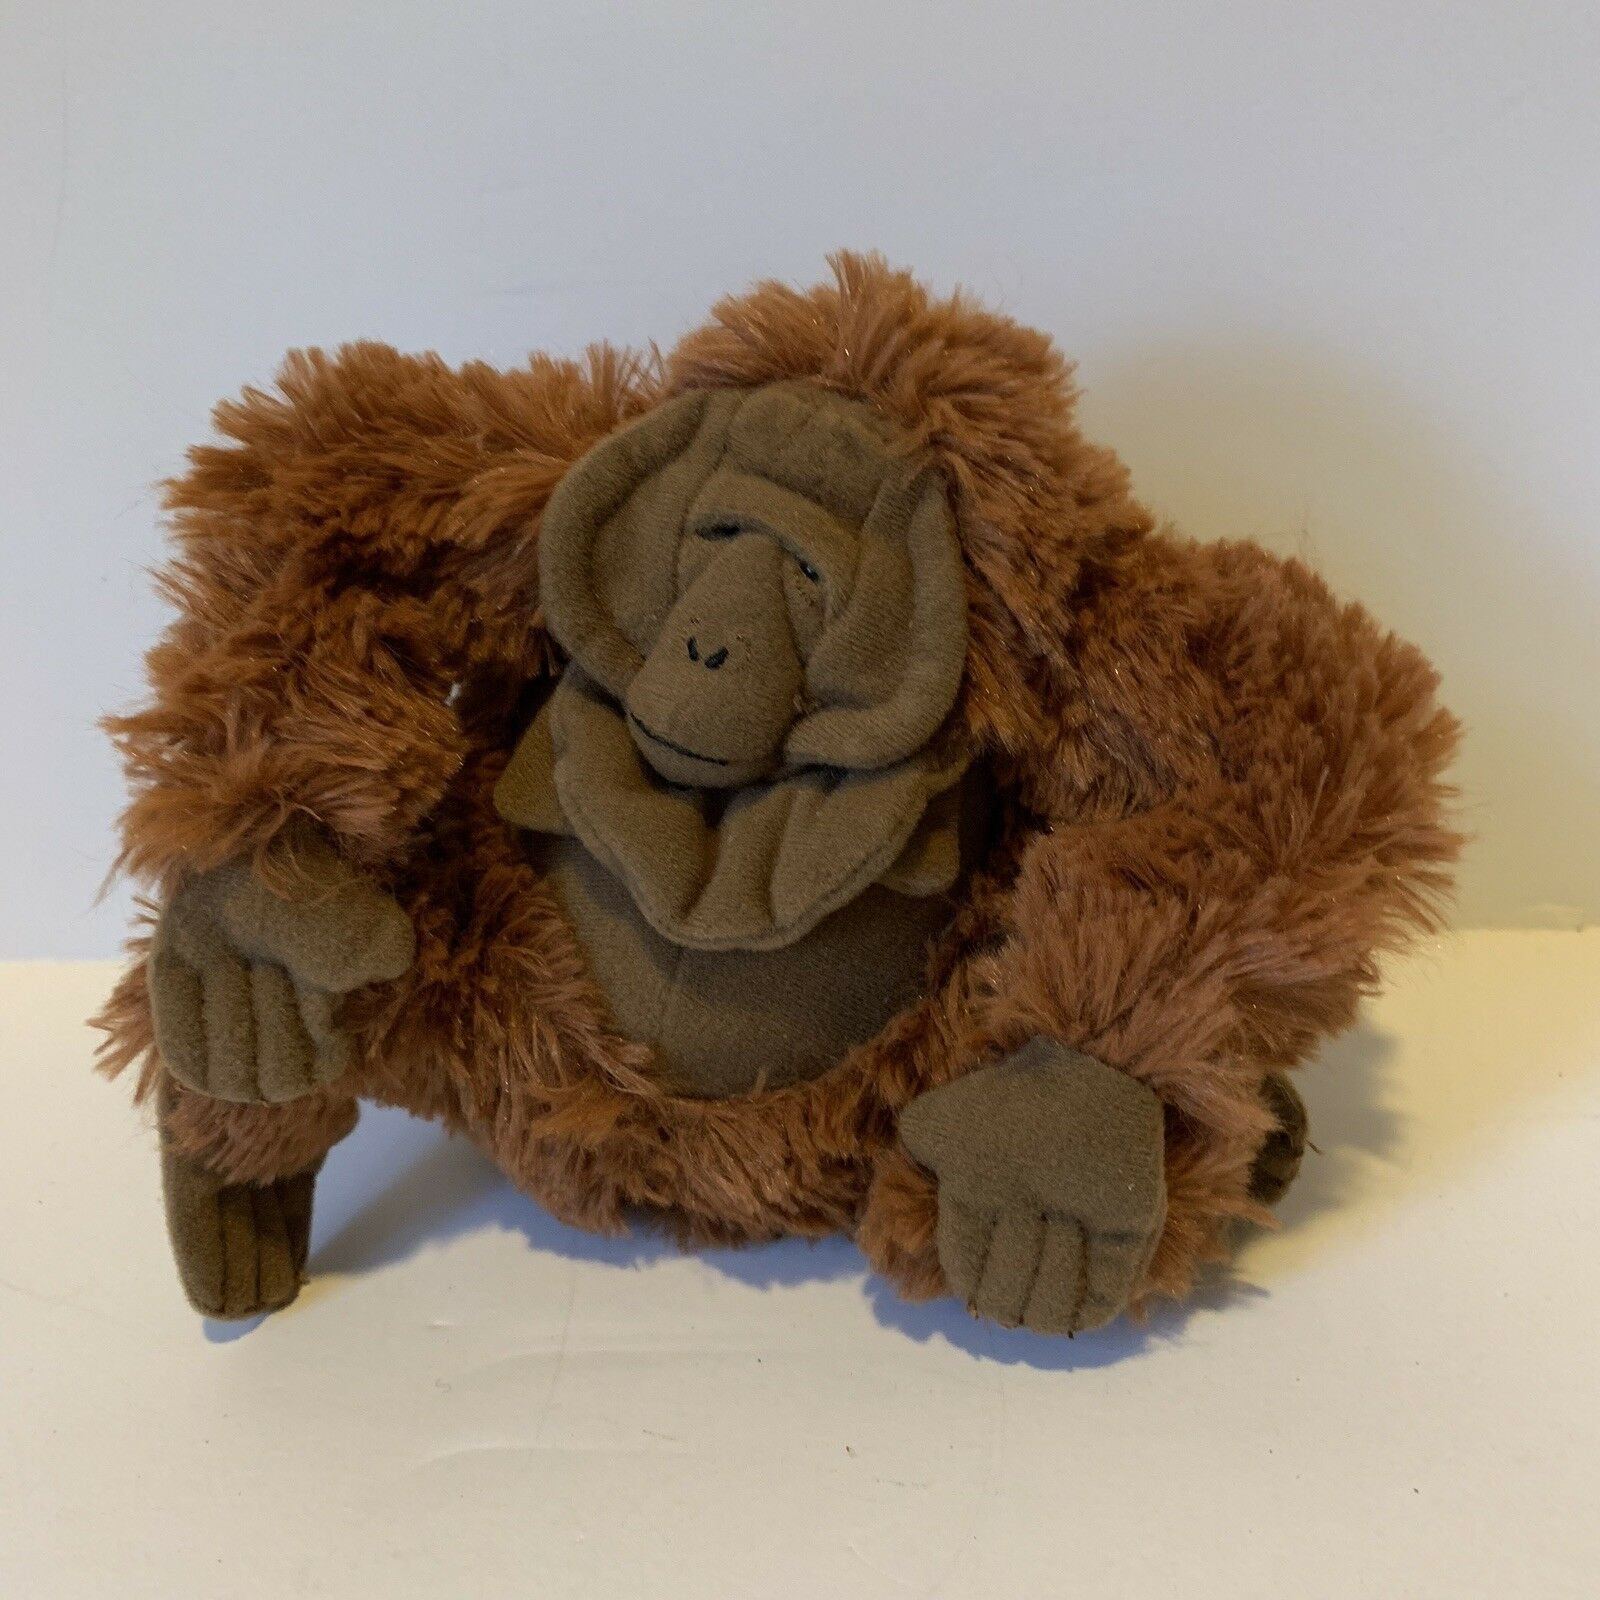 "Disney Jungle Book King Louie Bean Plush 6"" Stuffed Animal Ape Monkey Soft Toy"